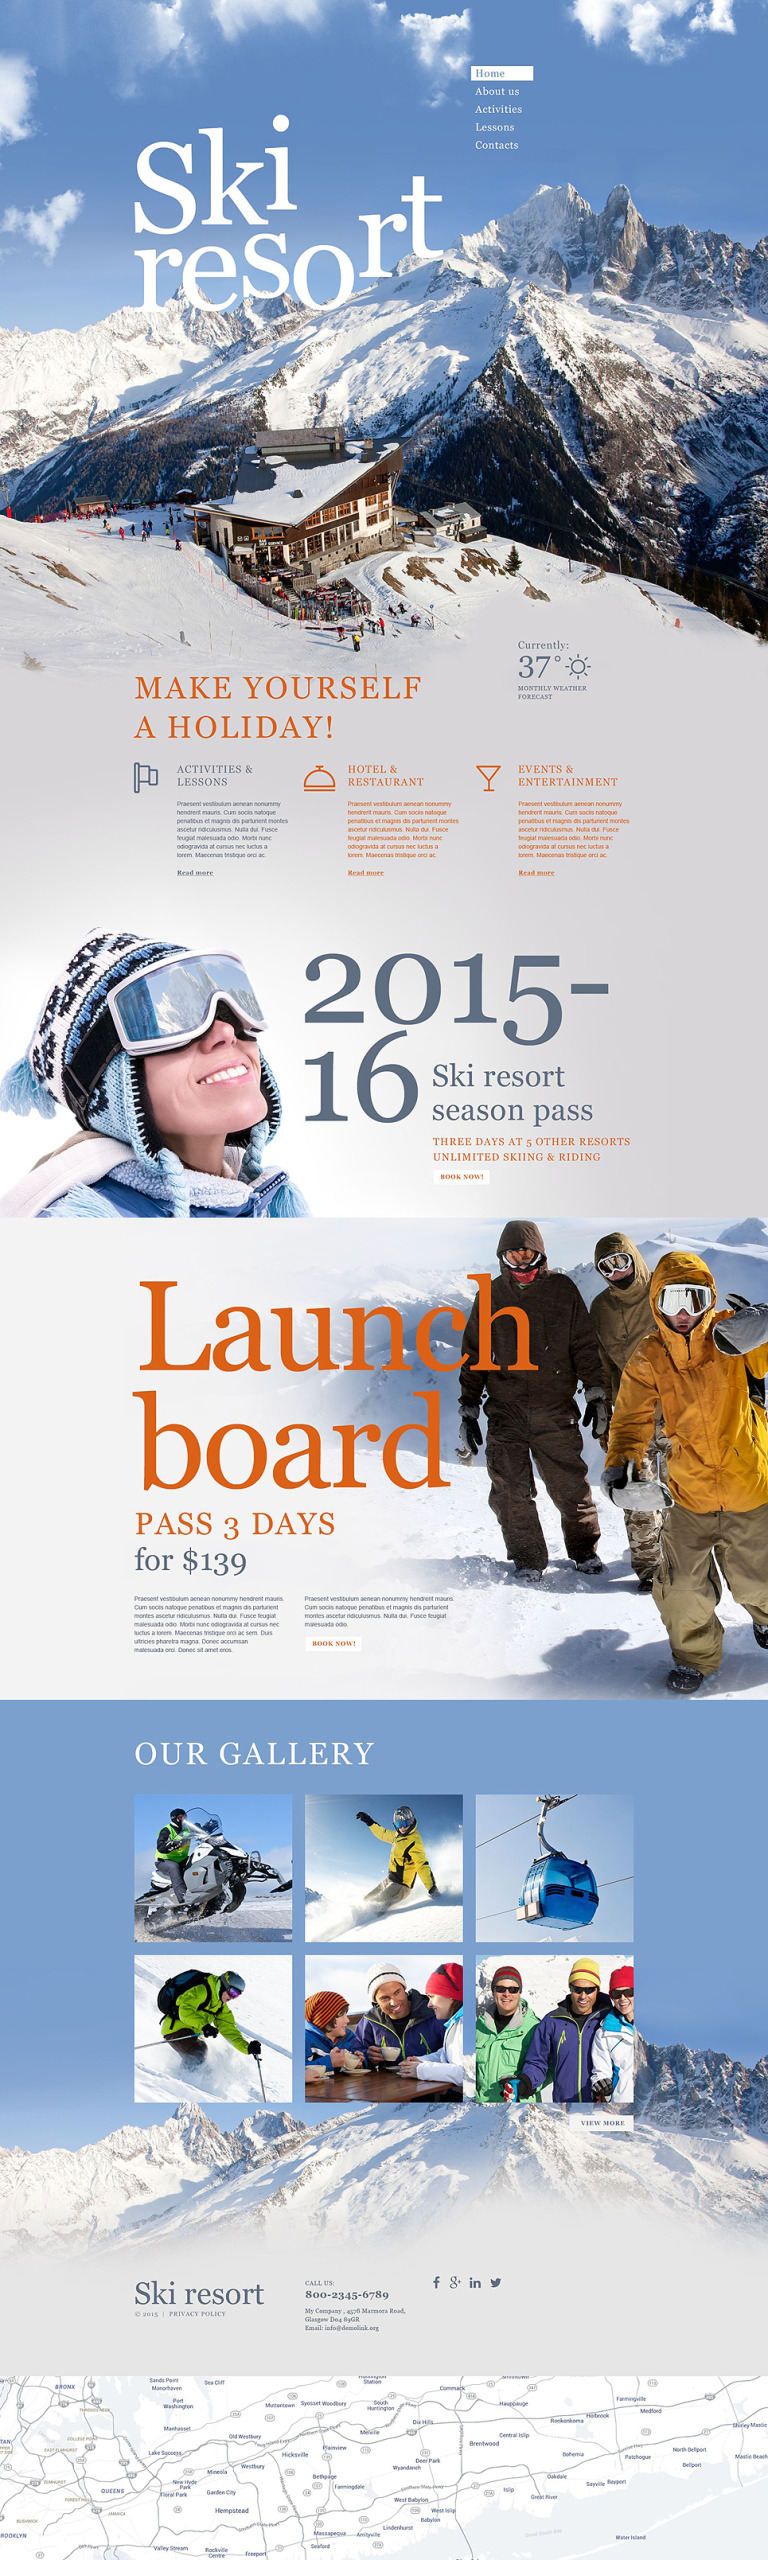 Skiing Muse Template New Screenshots BIG